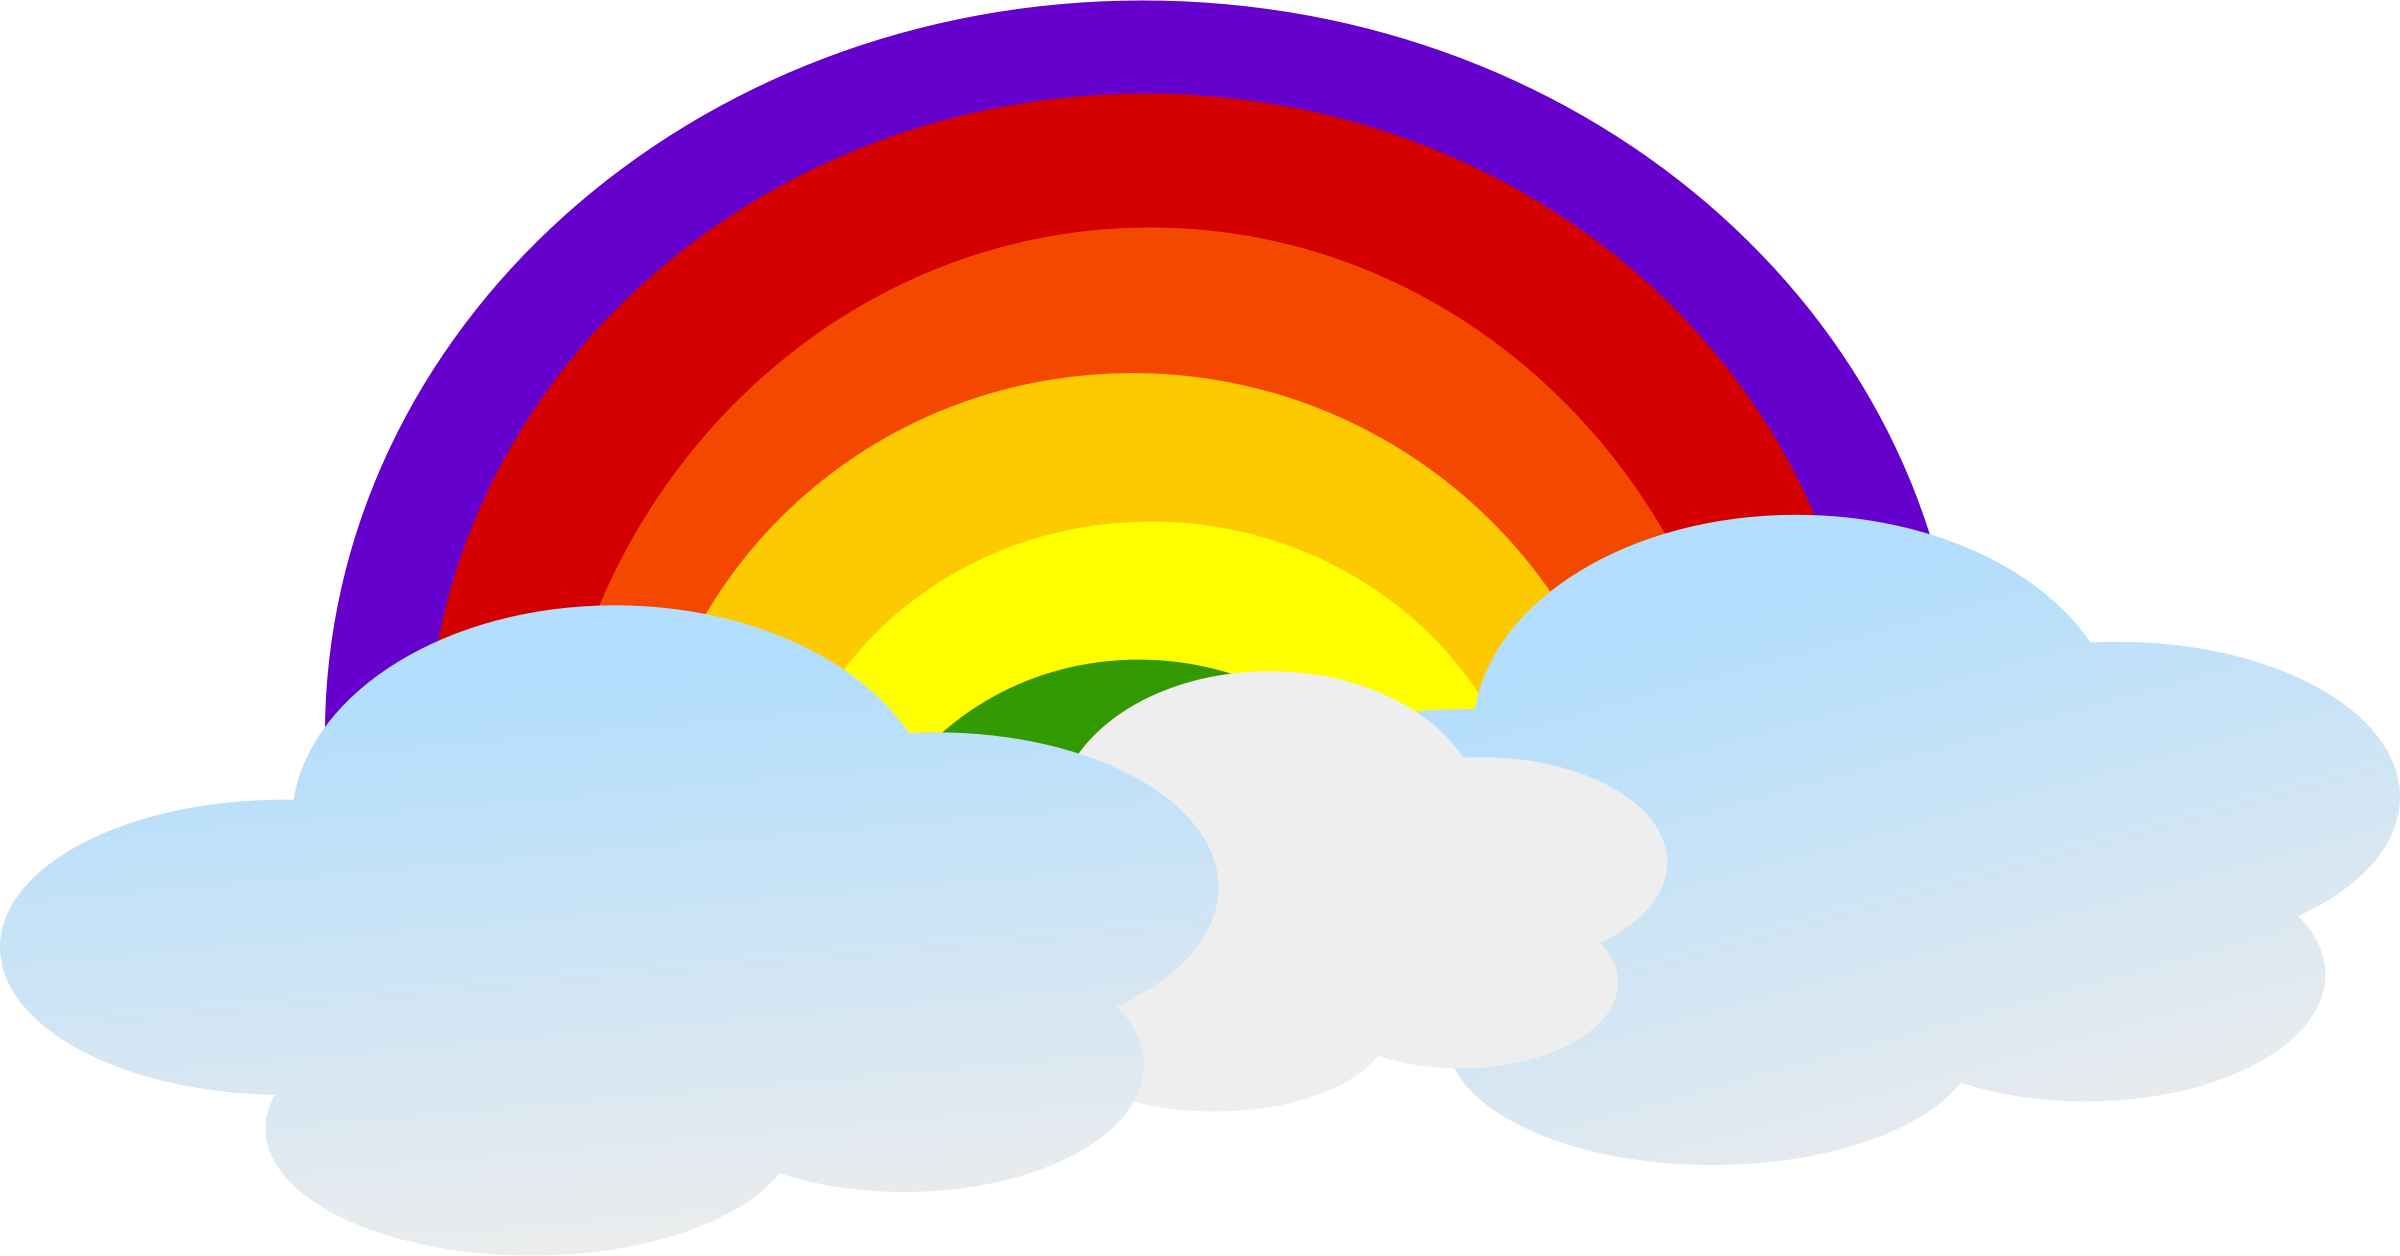 Coat clipart rainbow.  collection of cloud